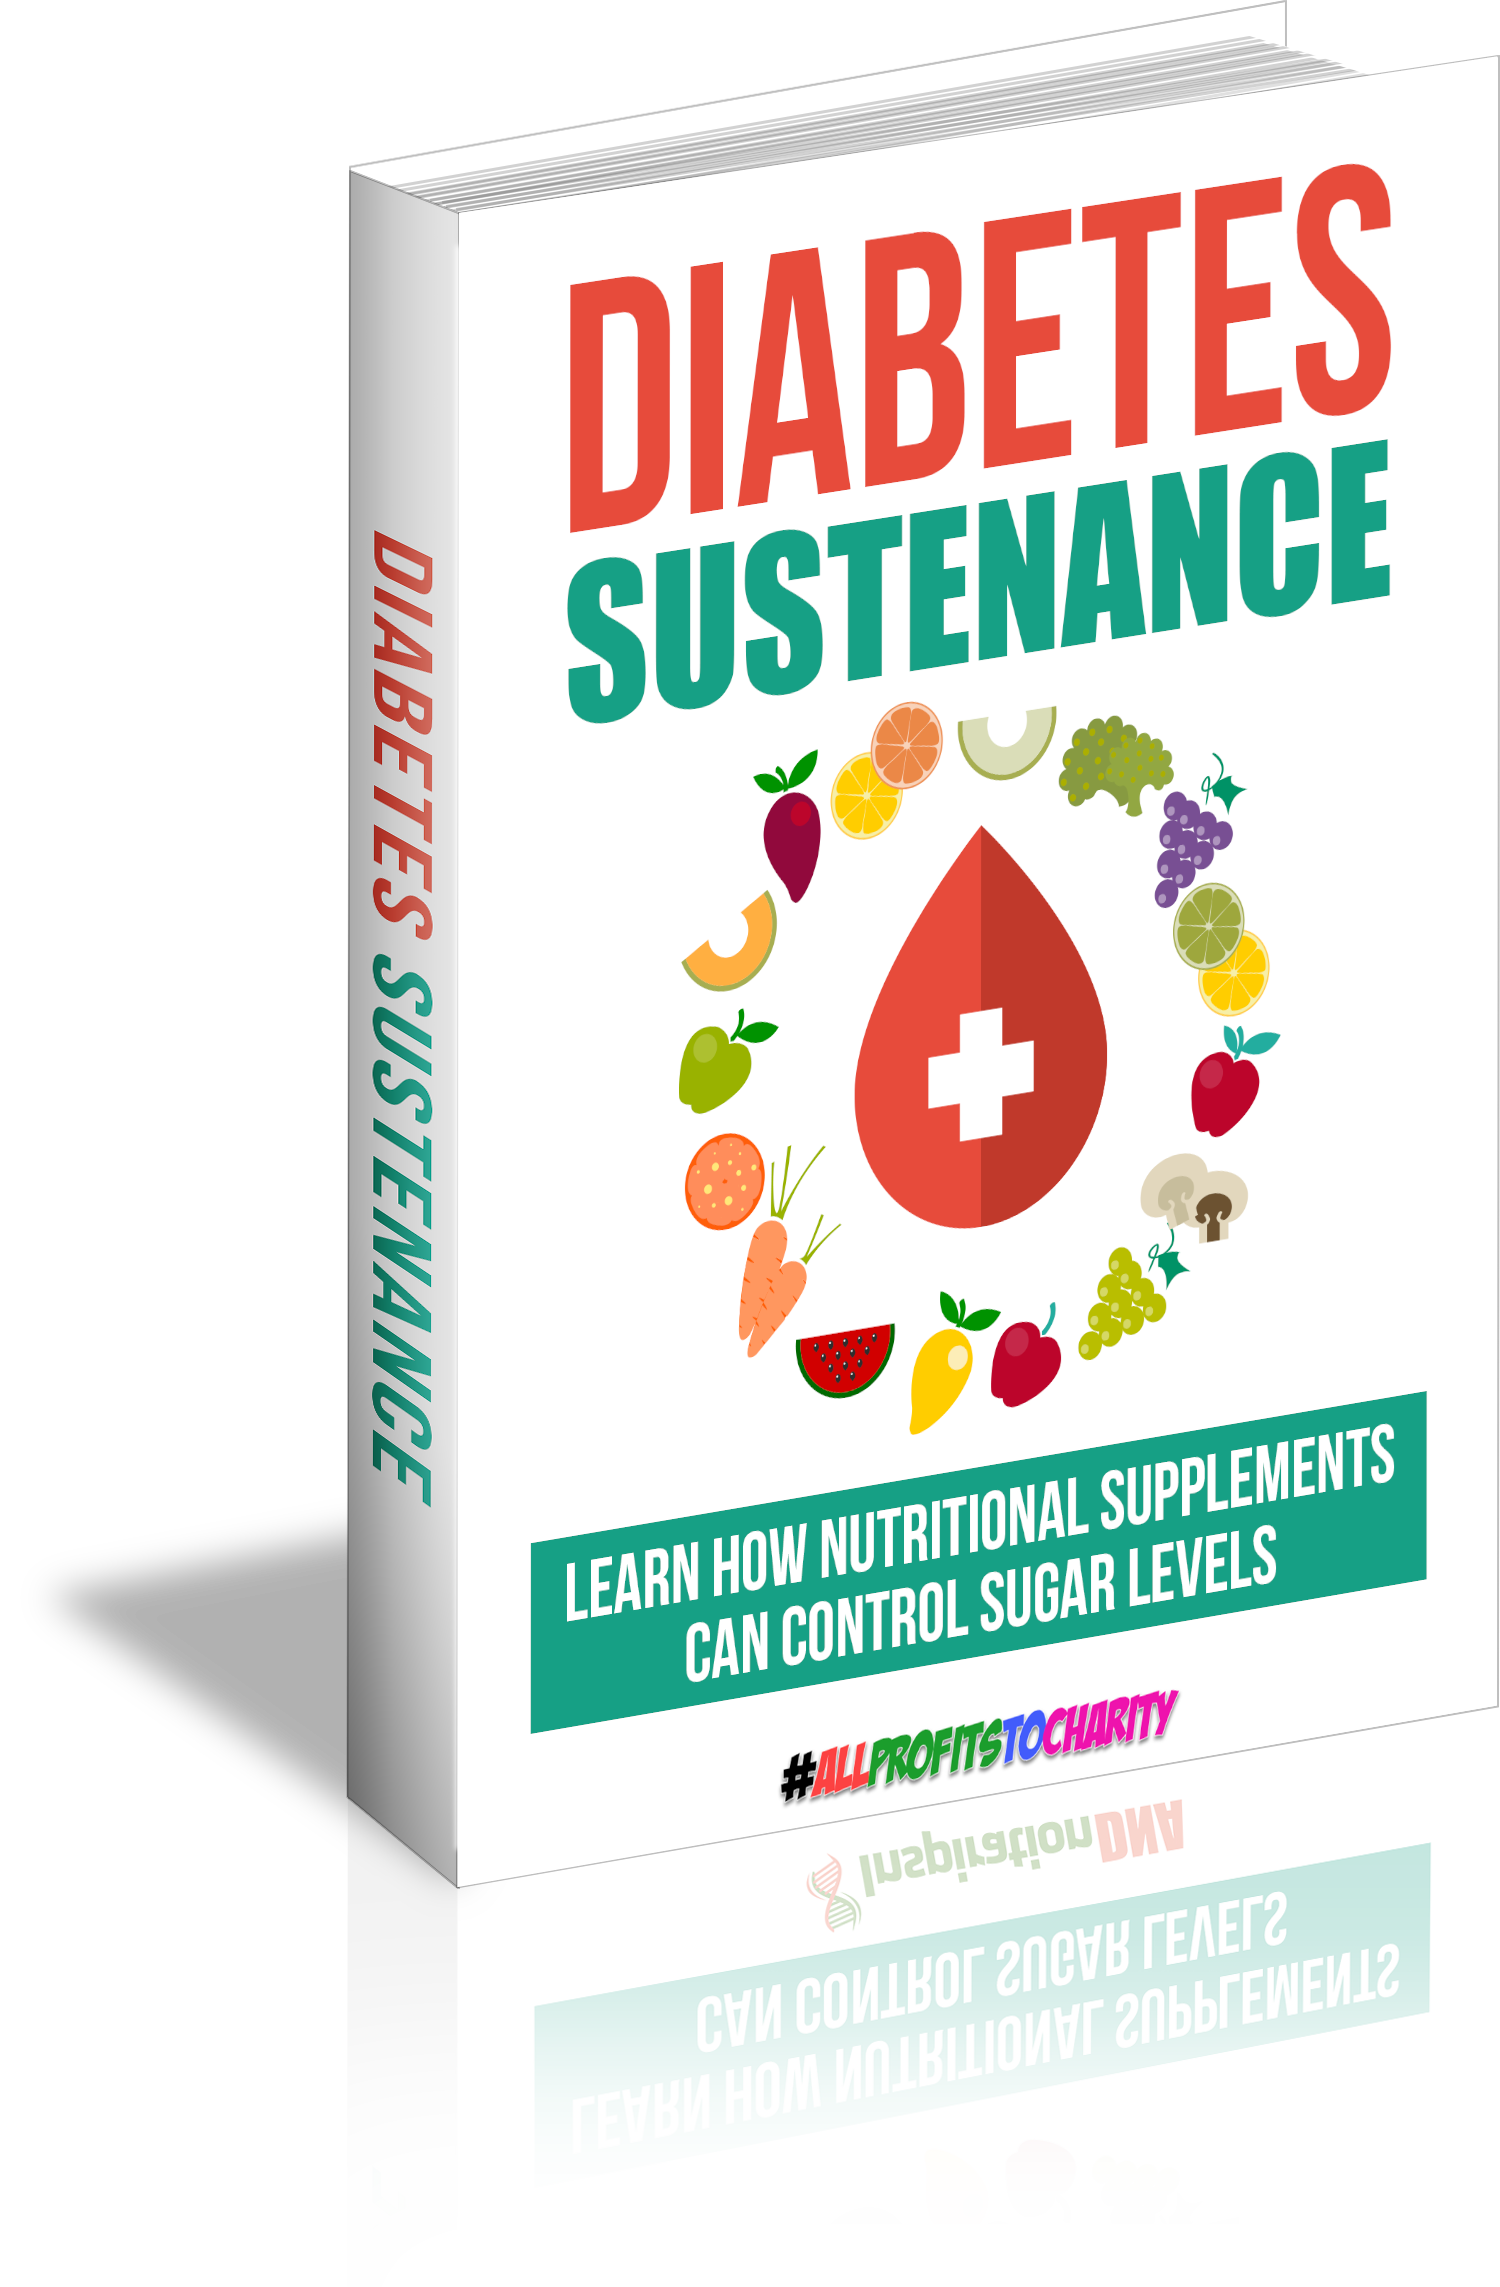 Diabetes Sustenance cover